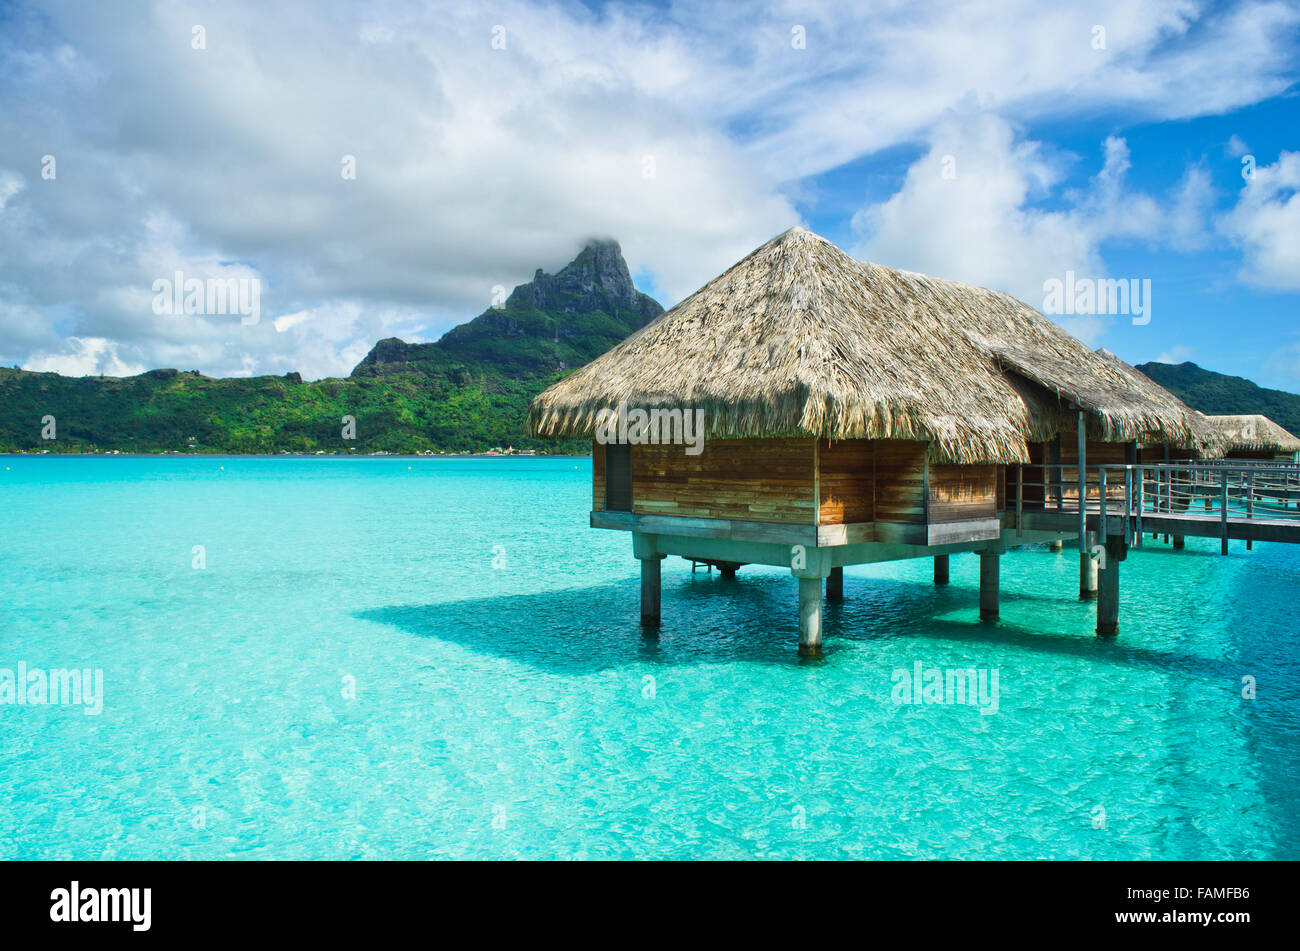 Luxury overwater thatched roof bungalow in a honeymoon vacation resort in the clear blue lagoon of Bora Bora near - Stock Image